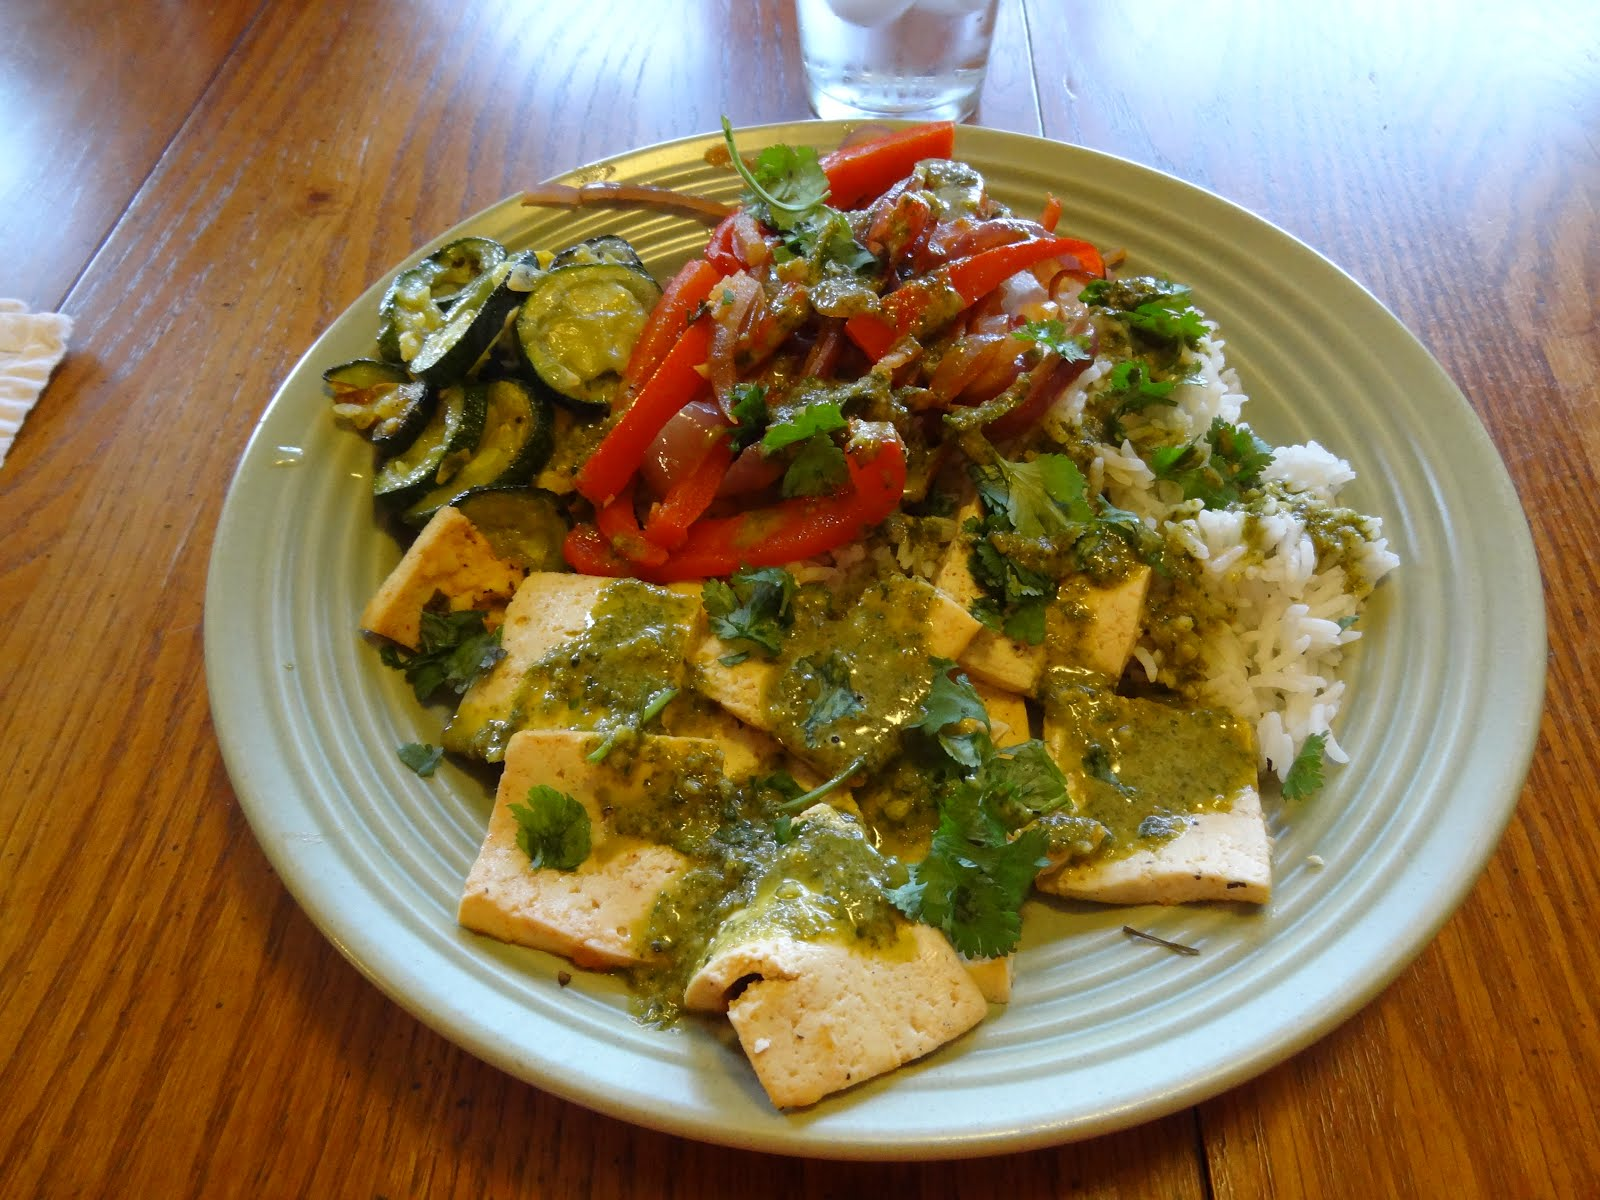 A Papa's Whimsy: Citrus-Marinated Tofu with Onions and Peppers